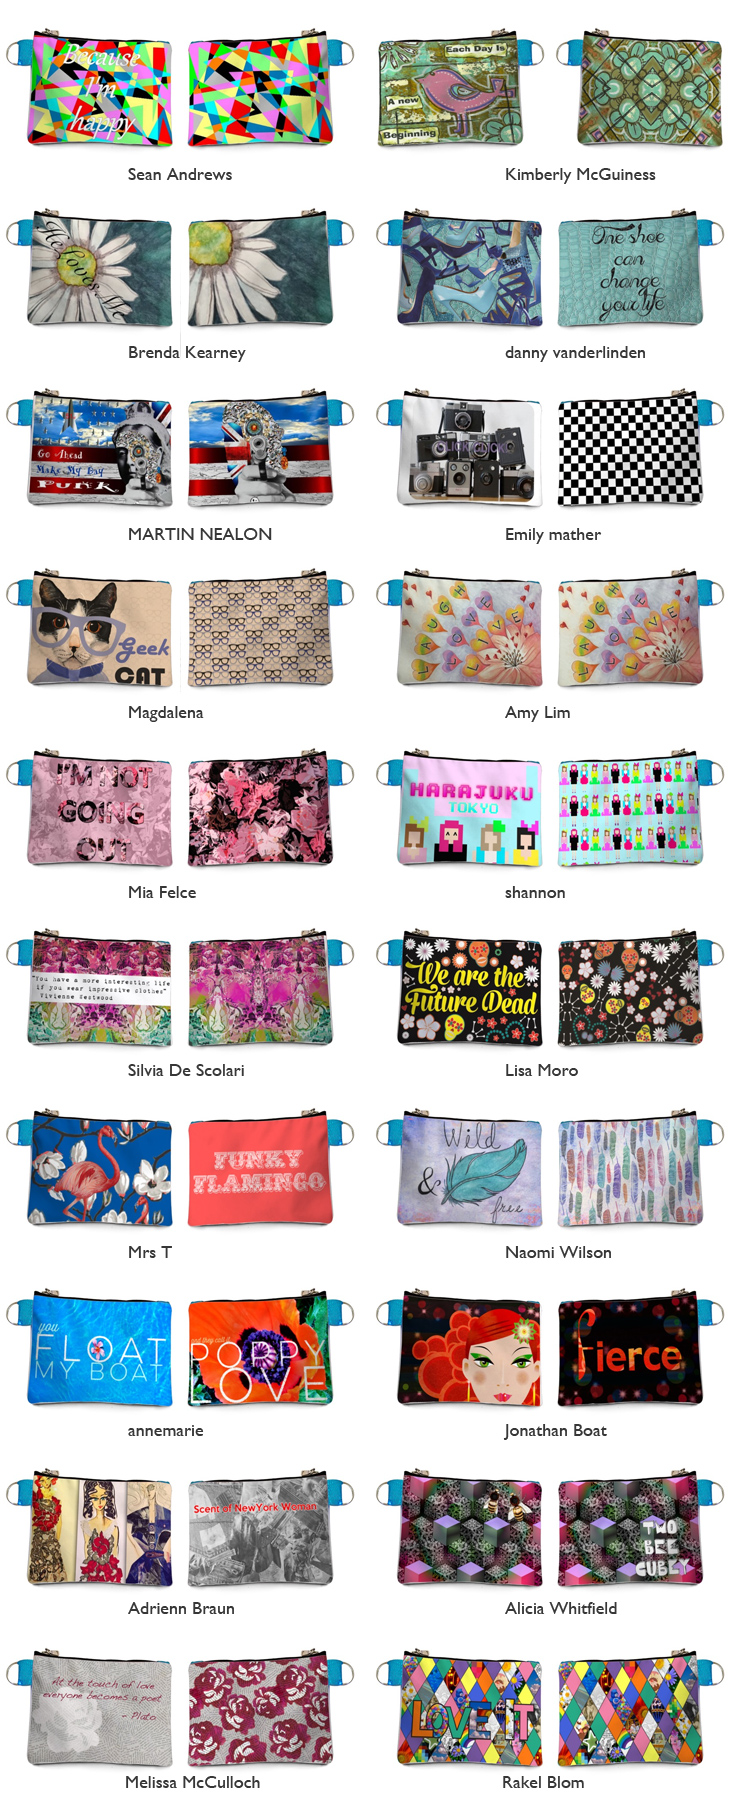 custom-bag-design-contest-winners-bagsoflove-stitchlesstv